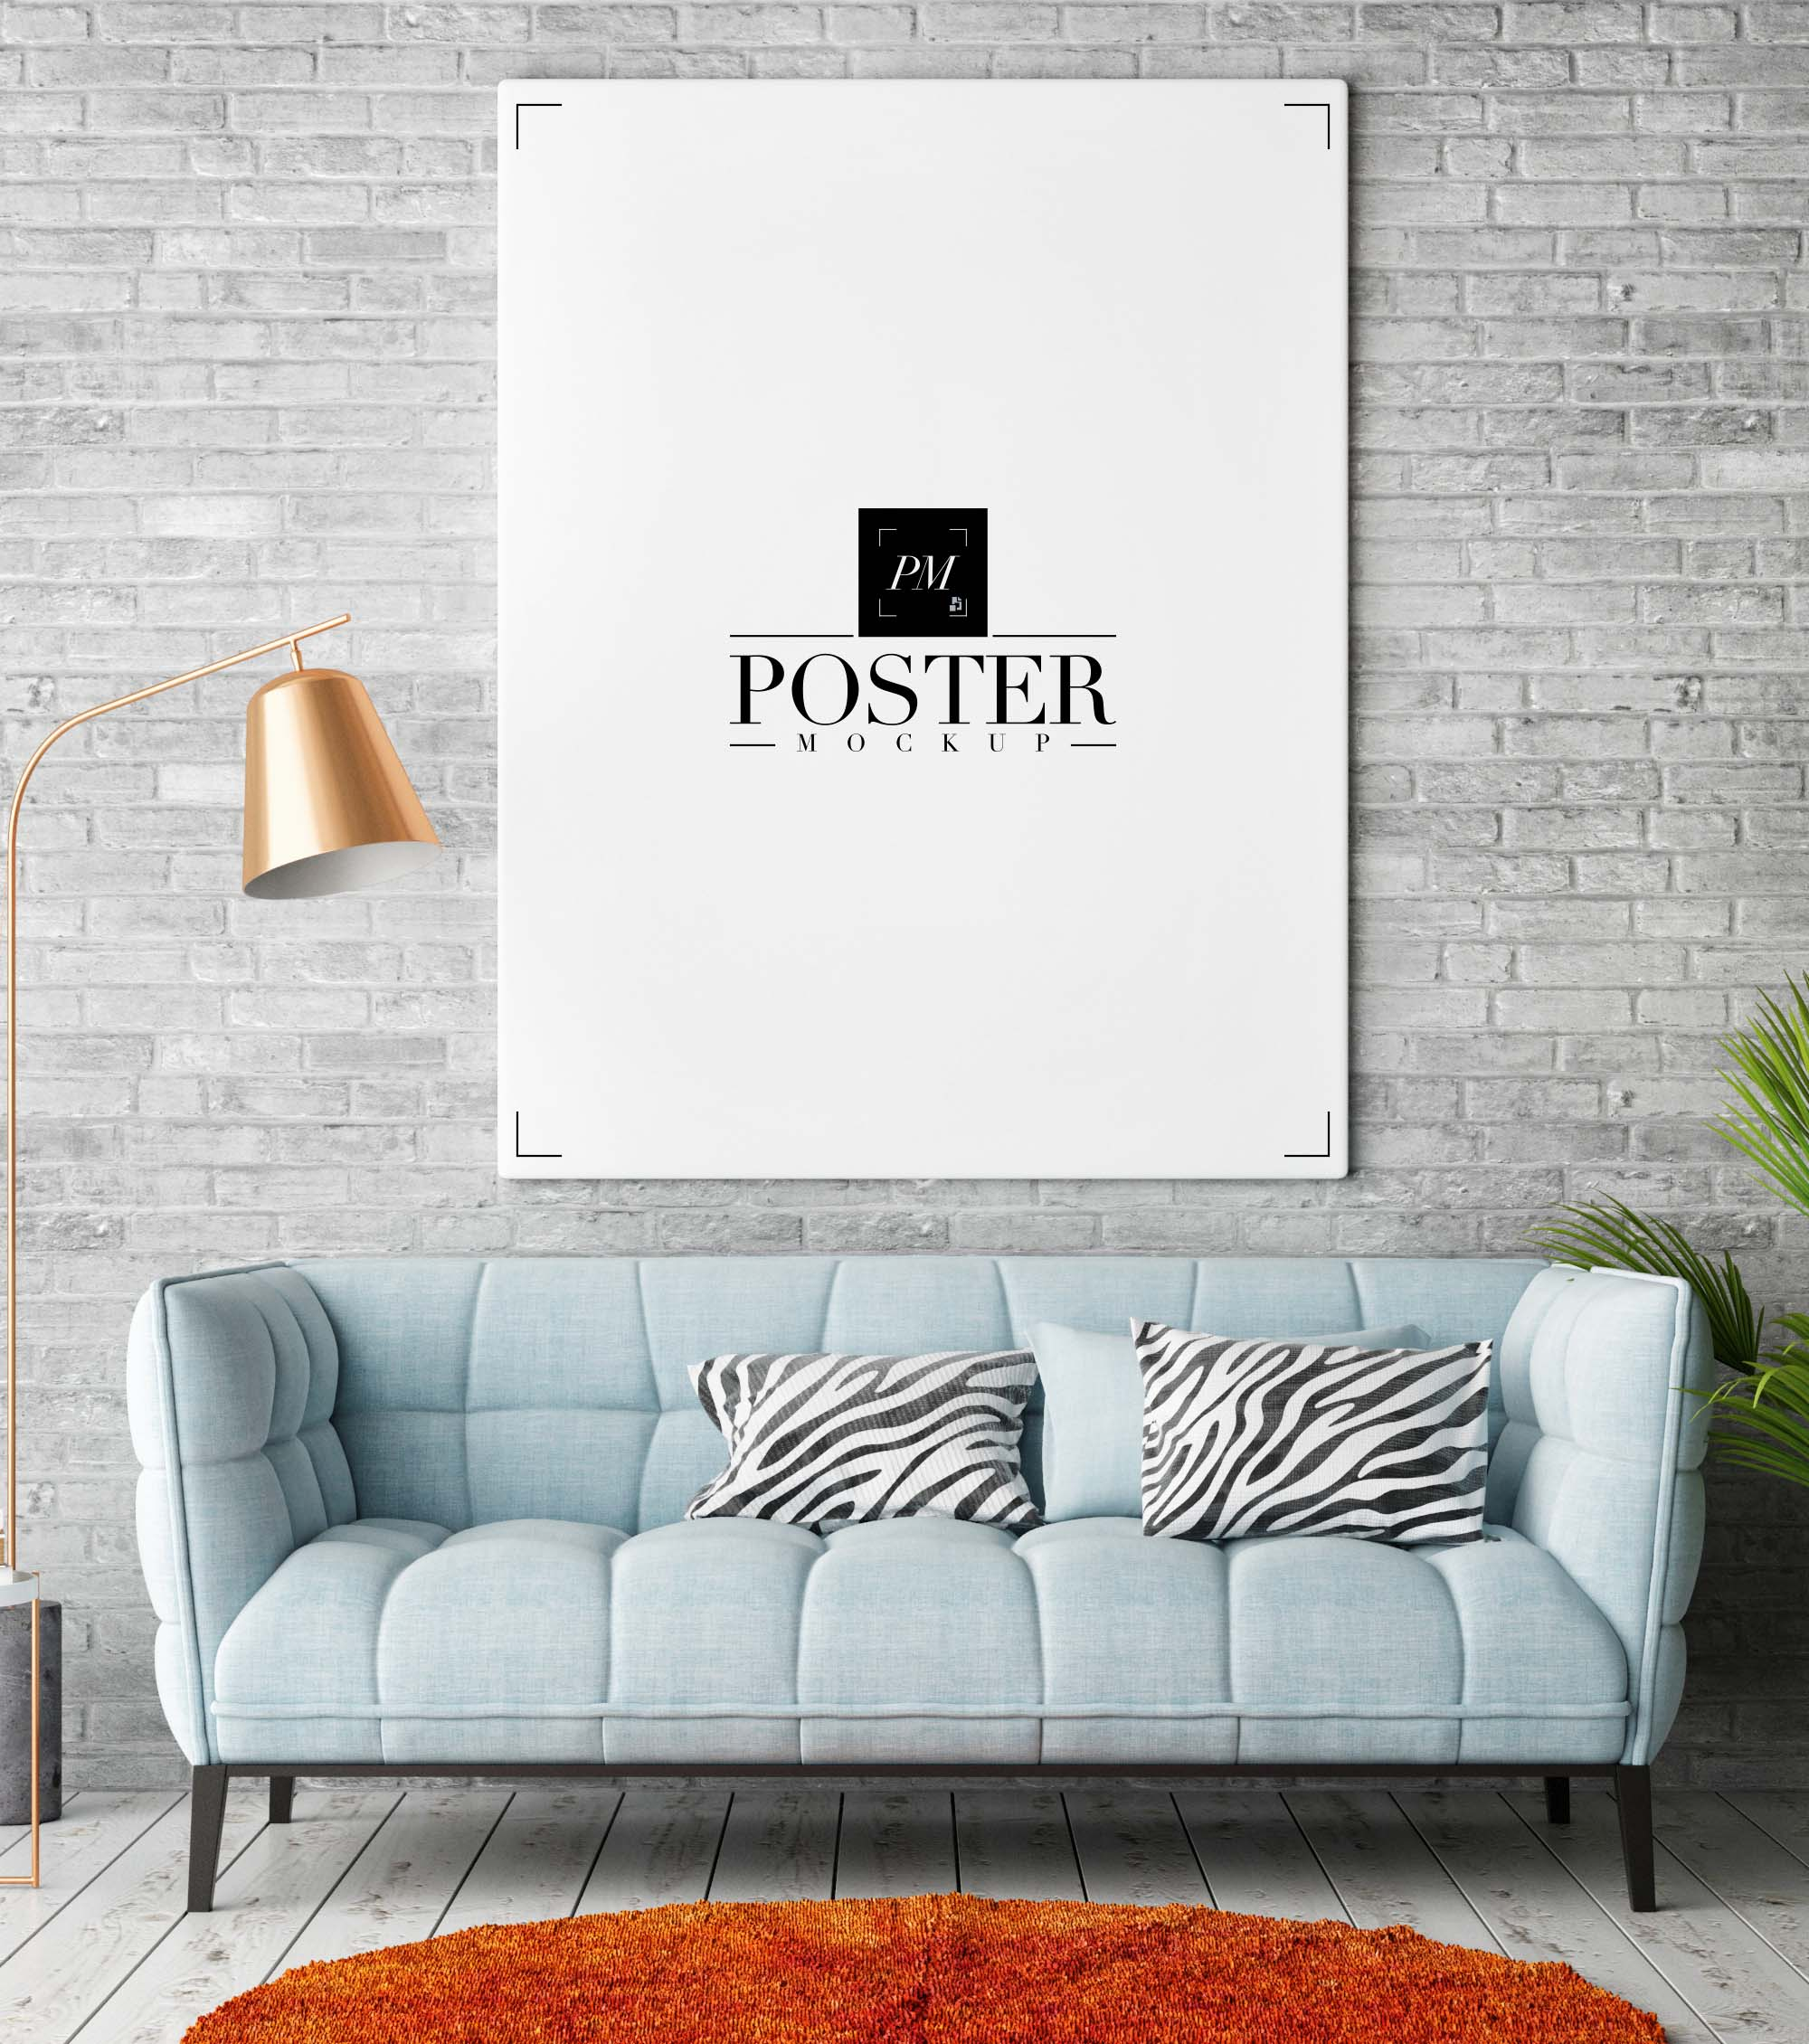 Free Room Interior Poster Mockup (PSD) on Room Decor Posters id=65508